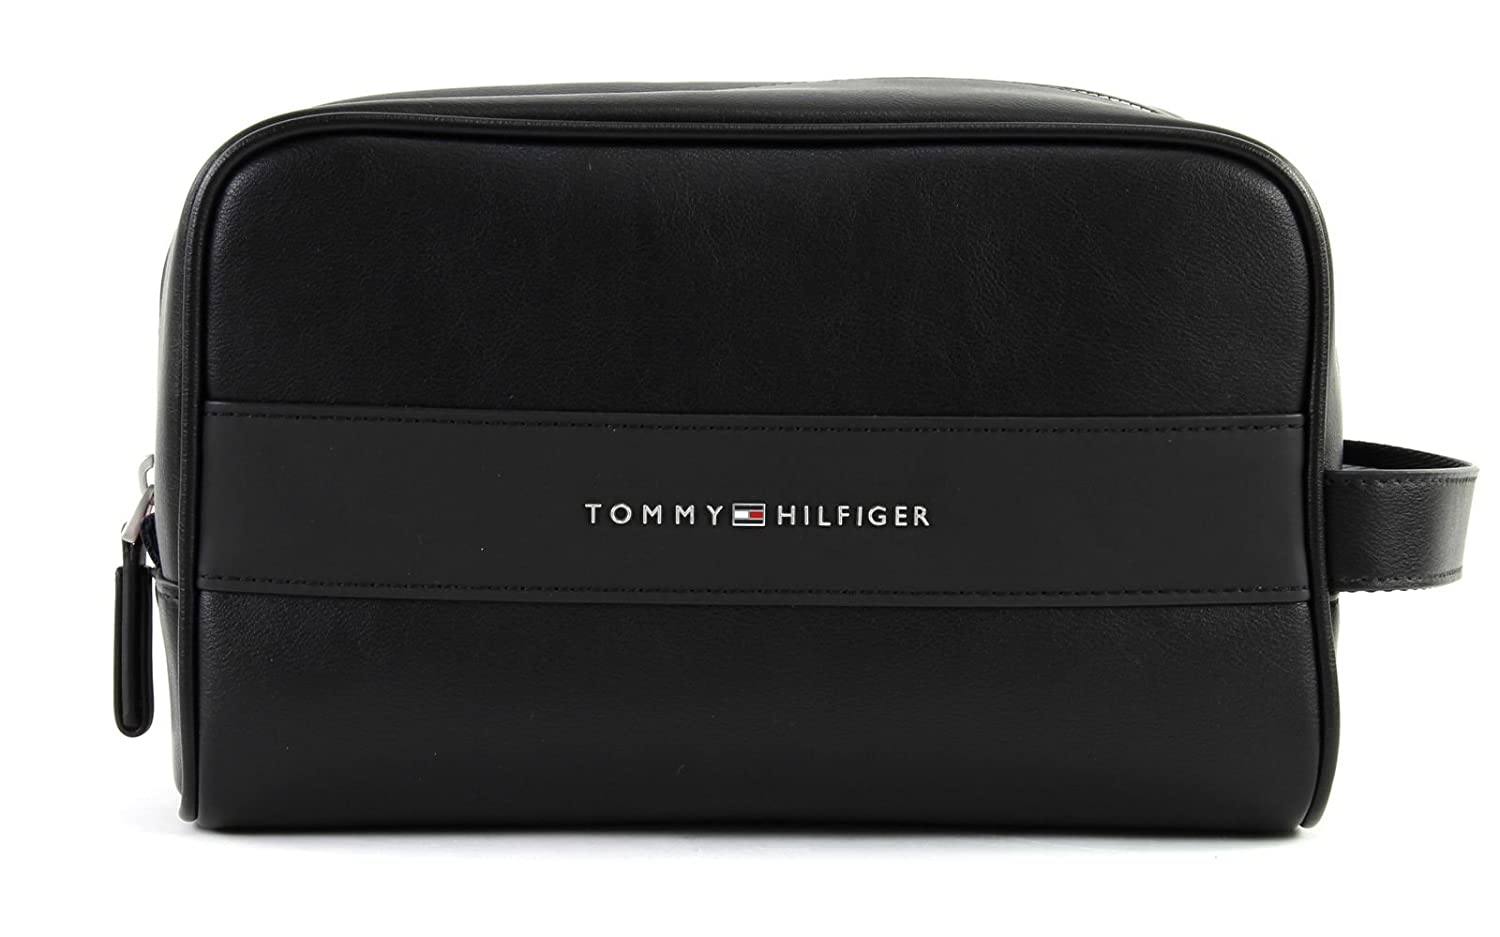 TOMMY HILFIGERPetite maroquinerie Hommes - AM0AM03946 17050_103684